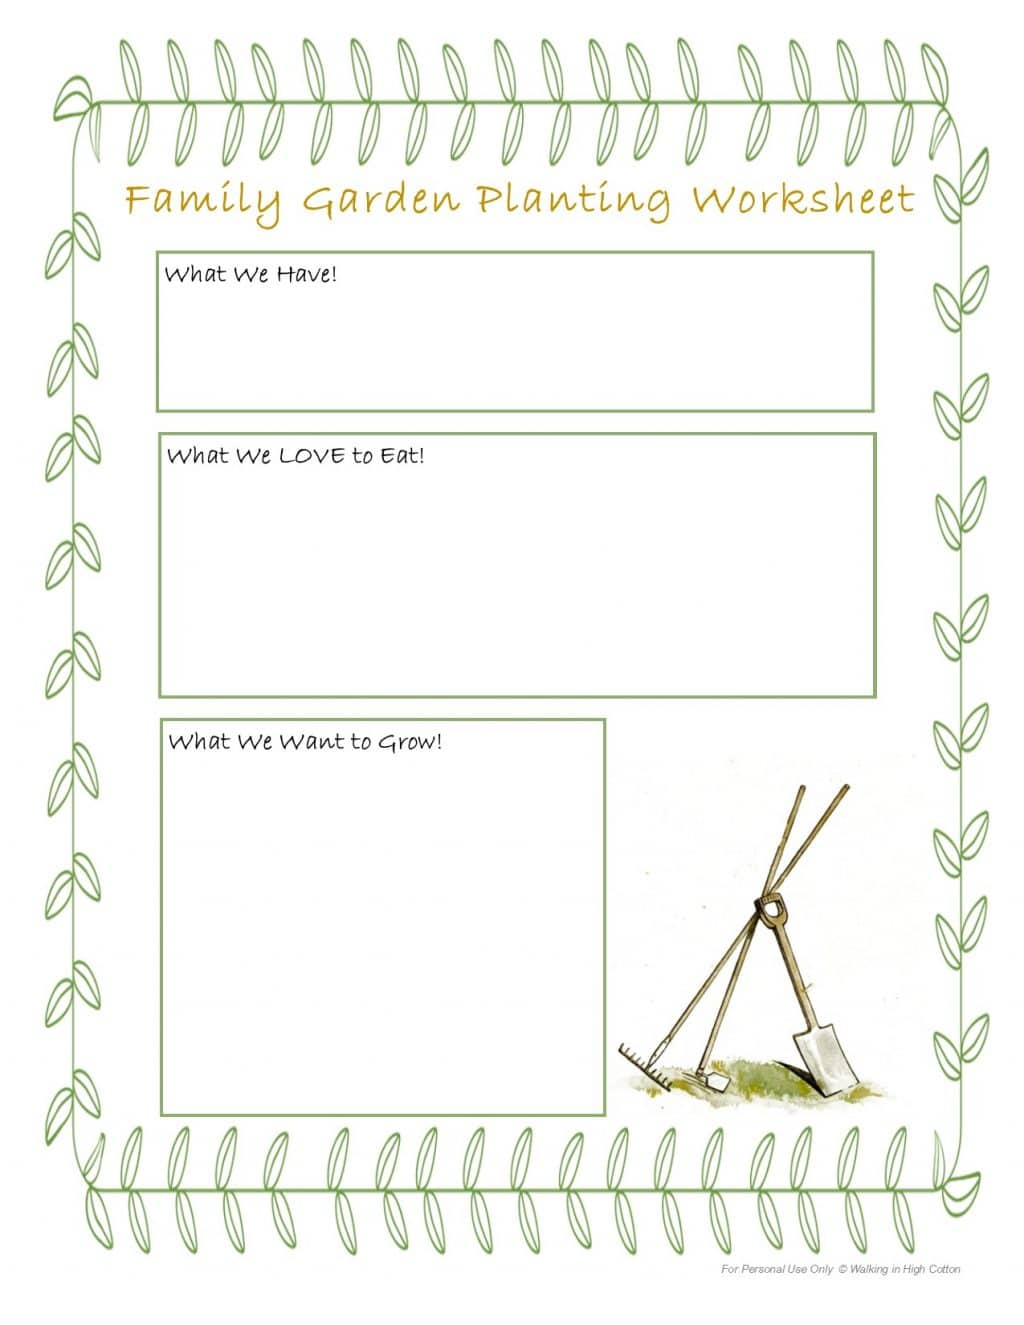 Gardening Worksheet For Schools